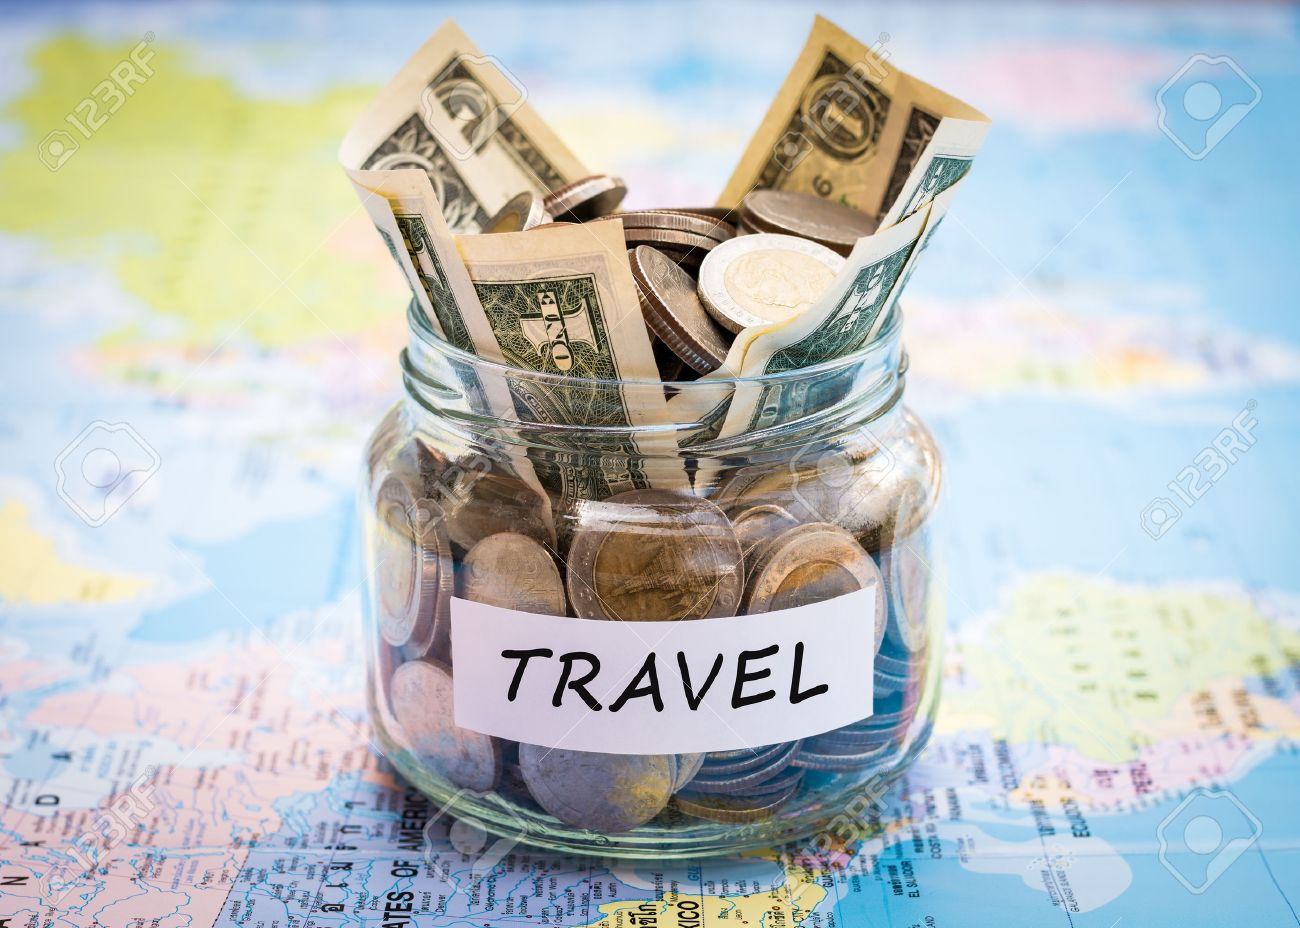 Travel Budget Concept Travel Money Savings In A Glass Jar On – Map World Jar